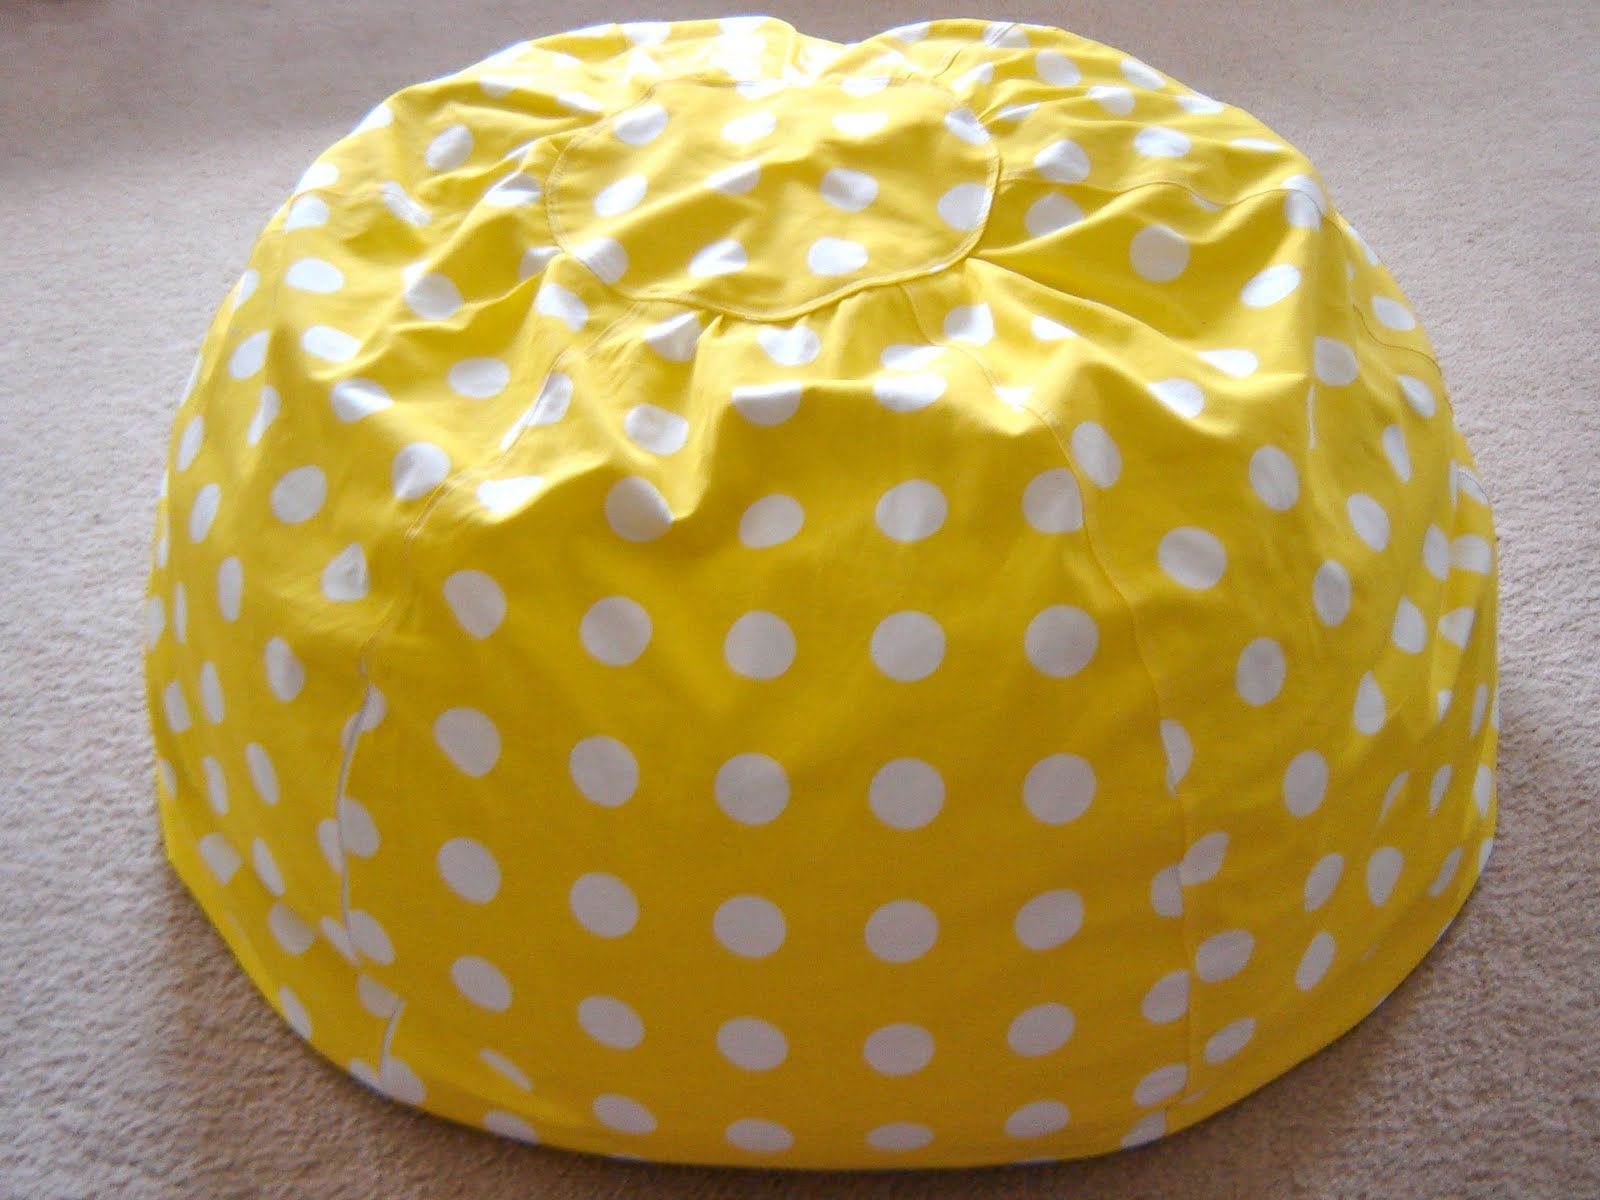 Adult Size Bean Bag Chair Easy Bean Bag Chair Pattern On It I Used The Adult Size Free